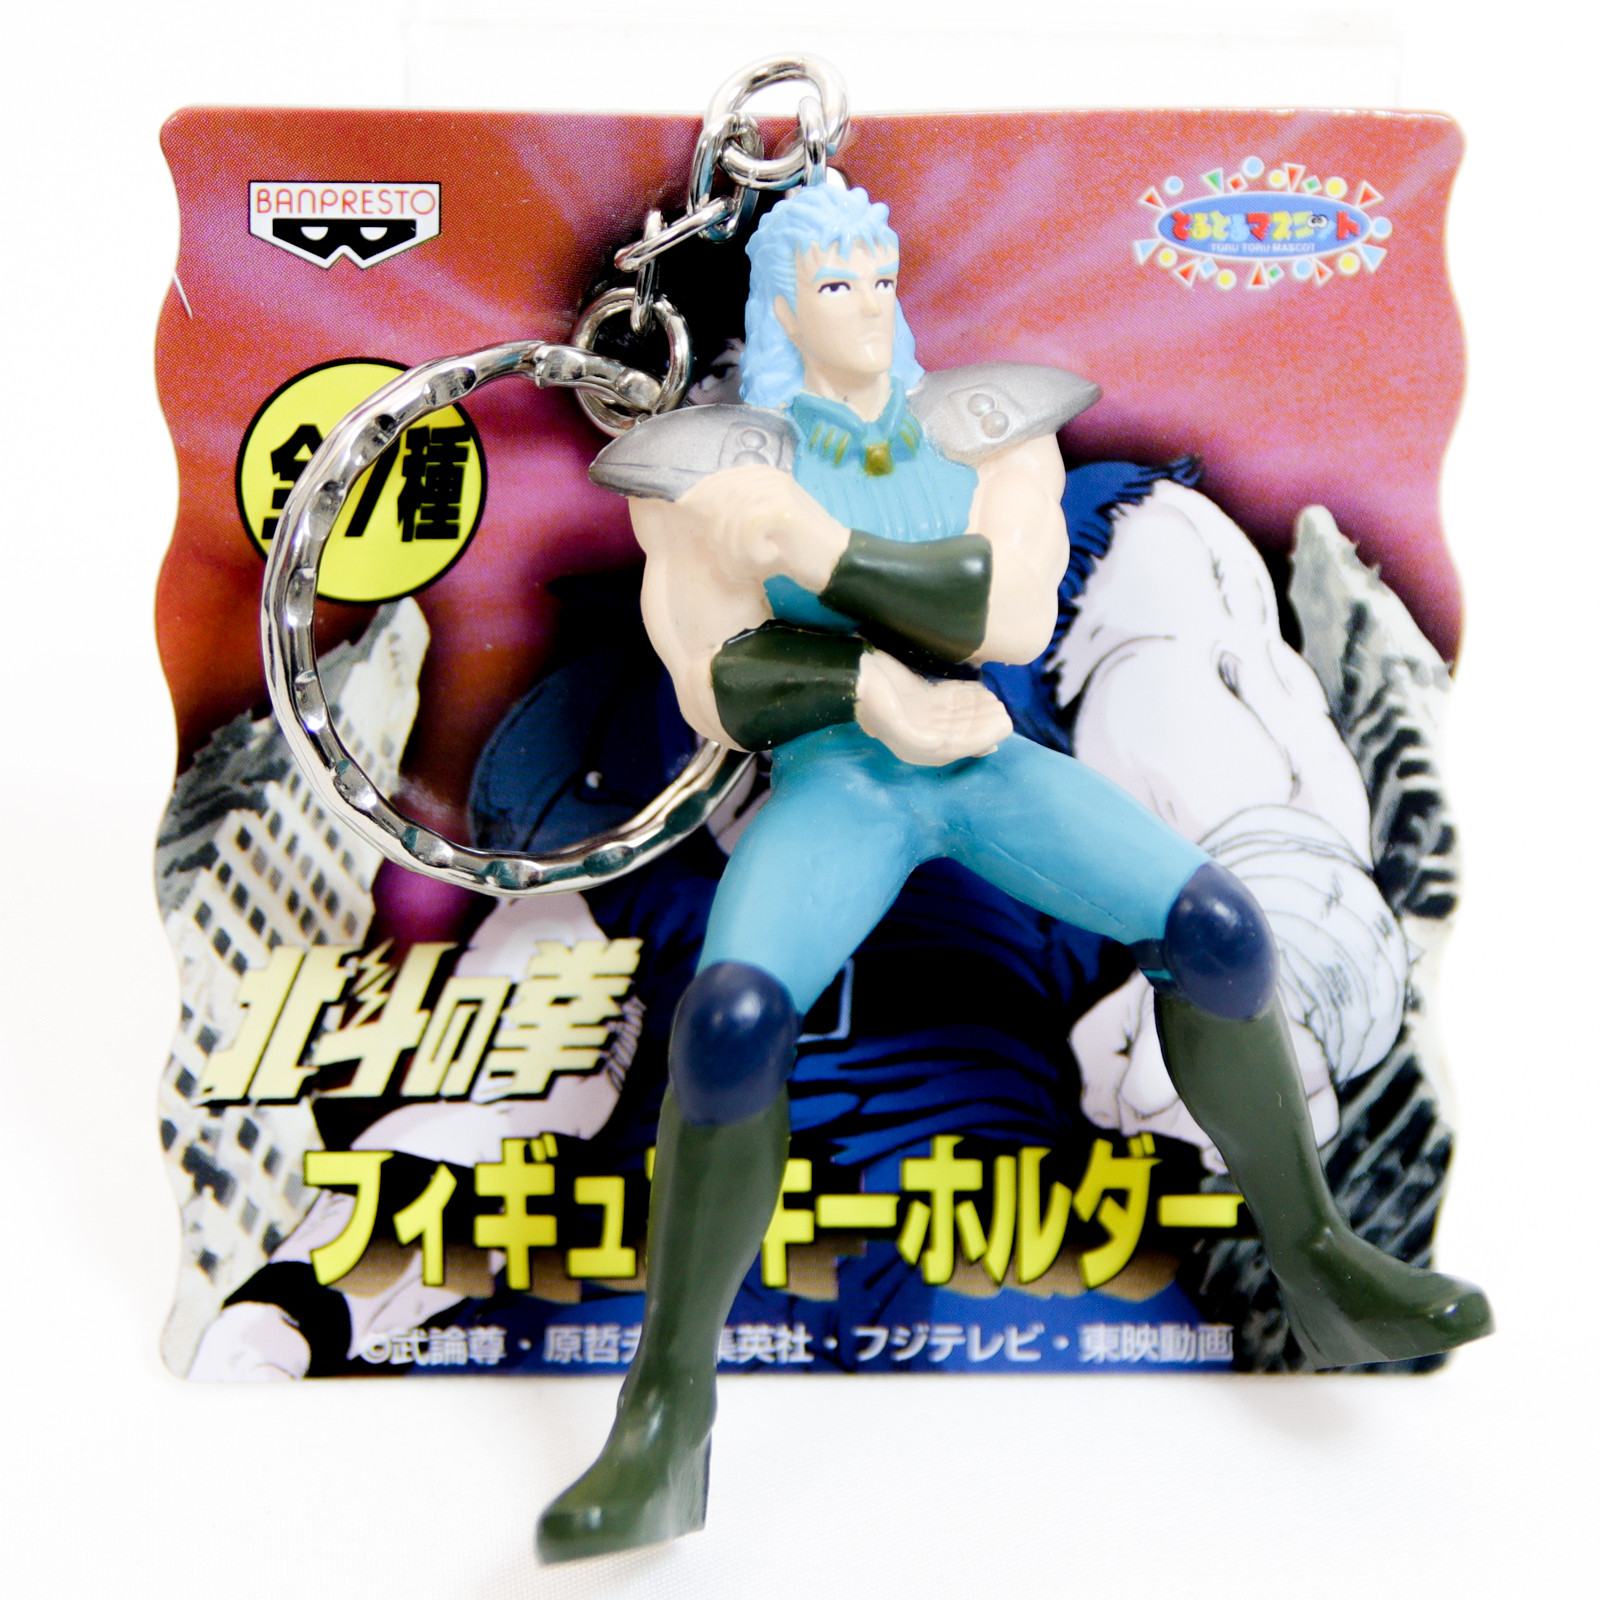 Fist of the North Star REI Figure Key Chain JAPAN ANIME Hokuto no Ken 2